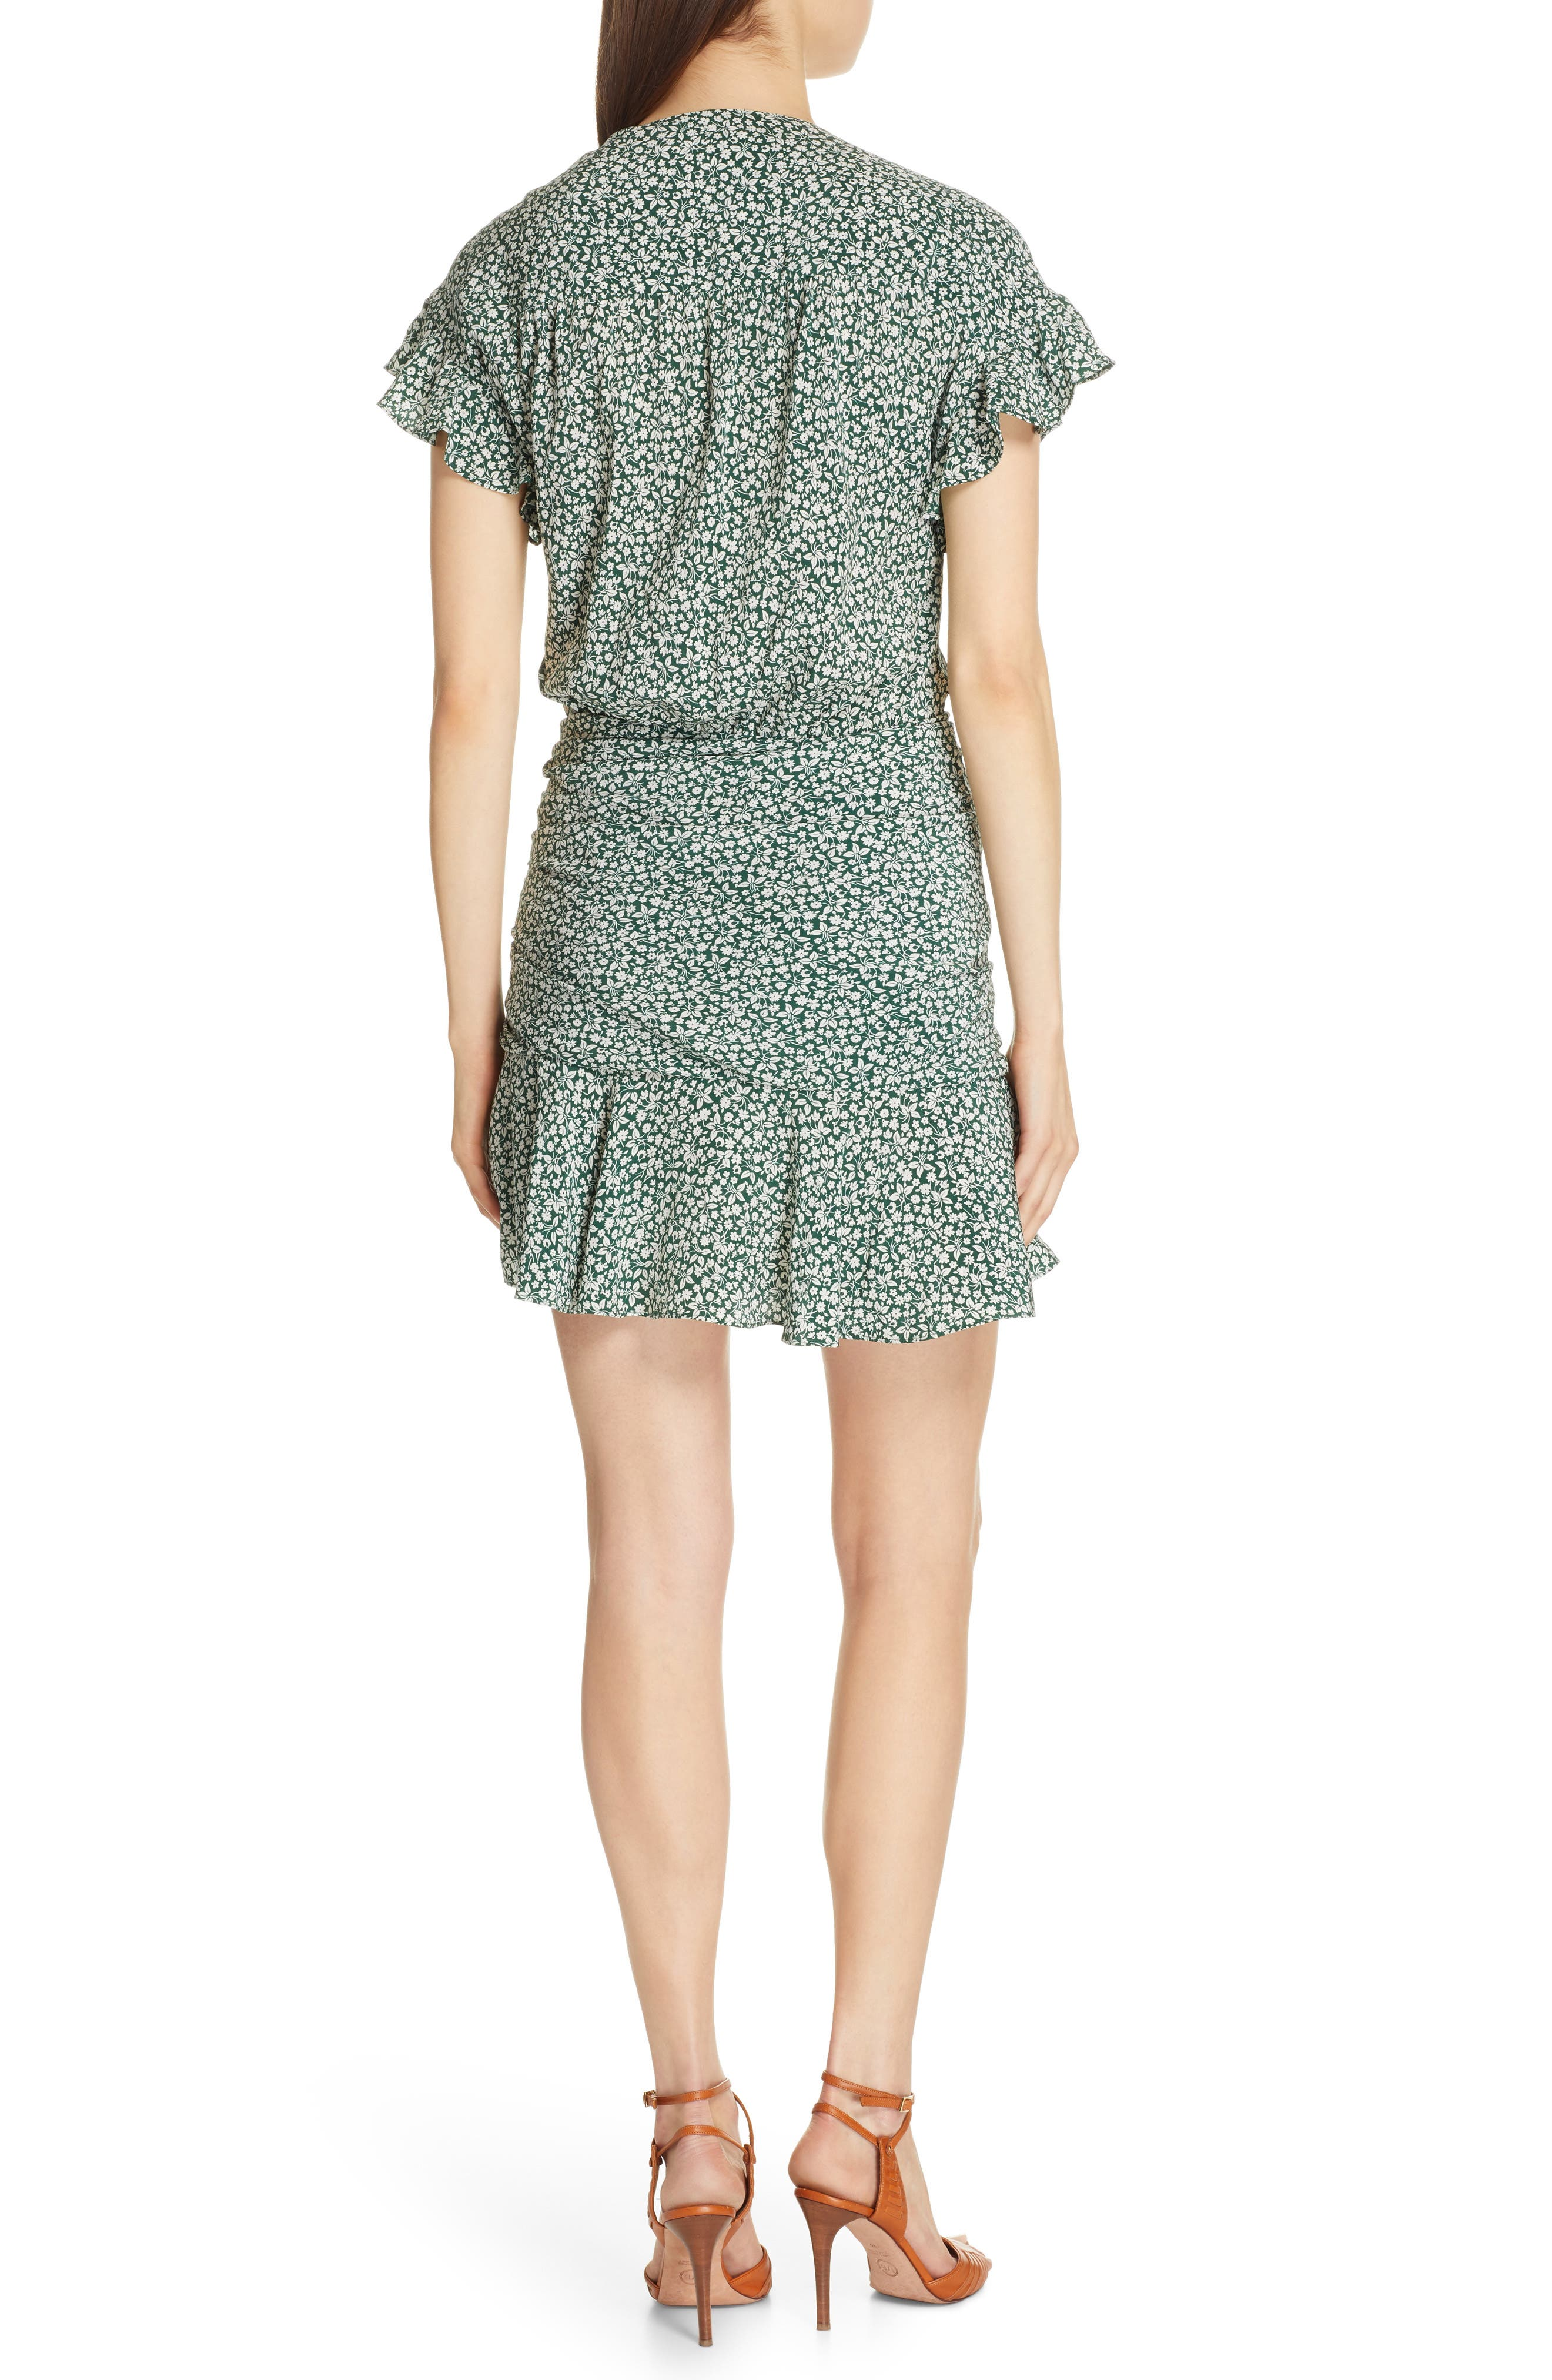 VERONICA BEARD, Marla Tie Ruched Silk Minidress, Alternate thumbnail 2, color, FOREST GREEN